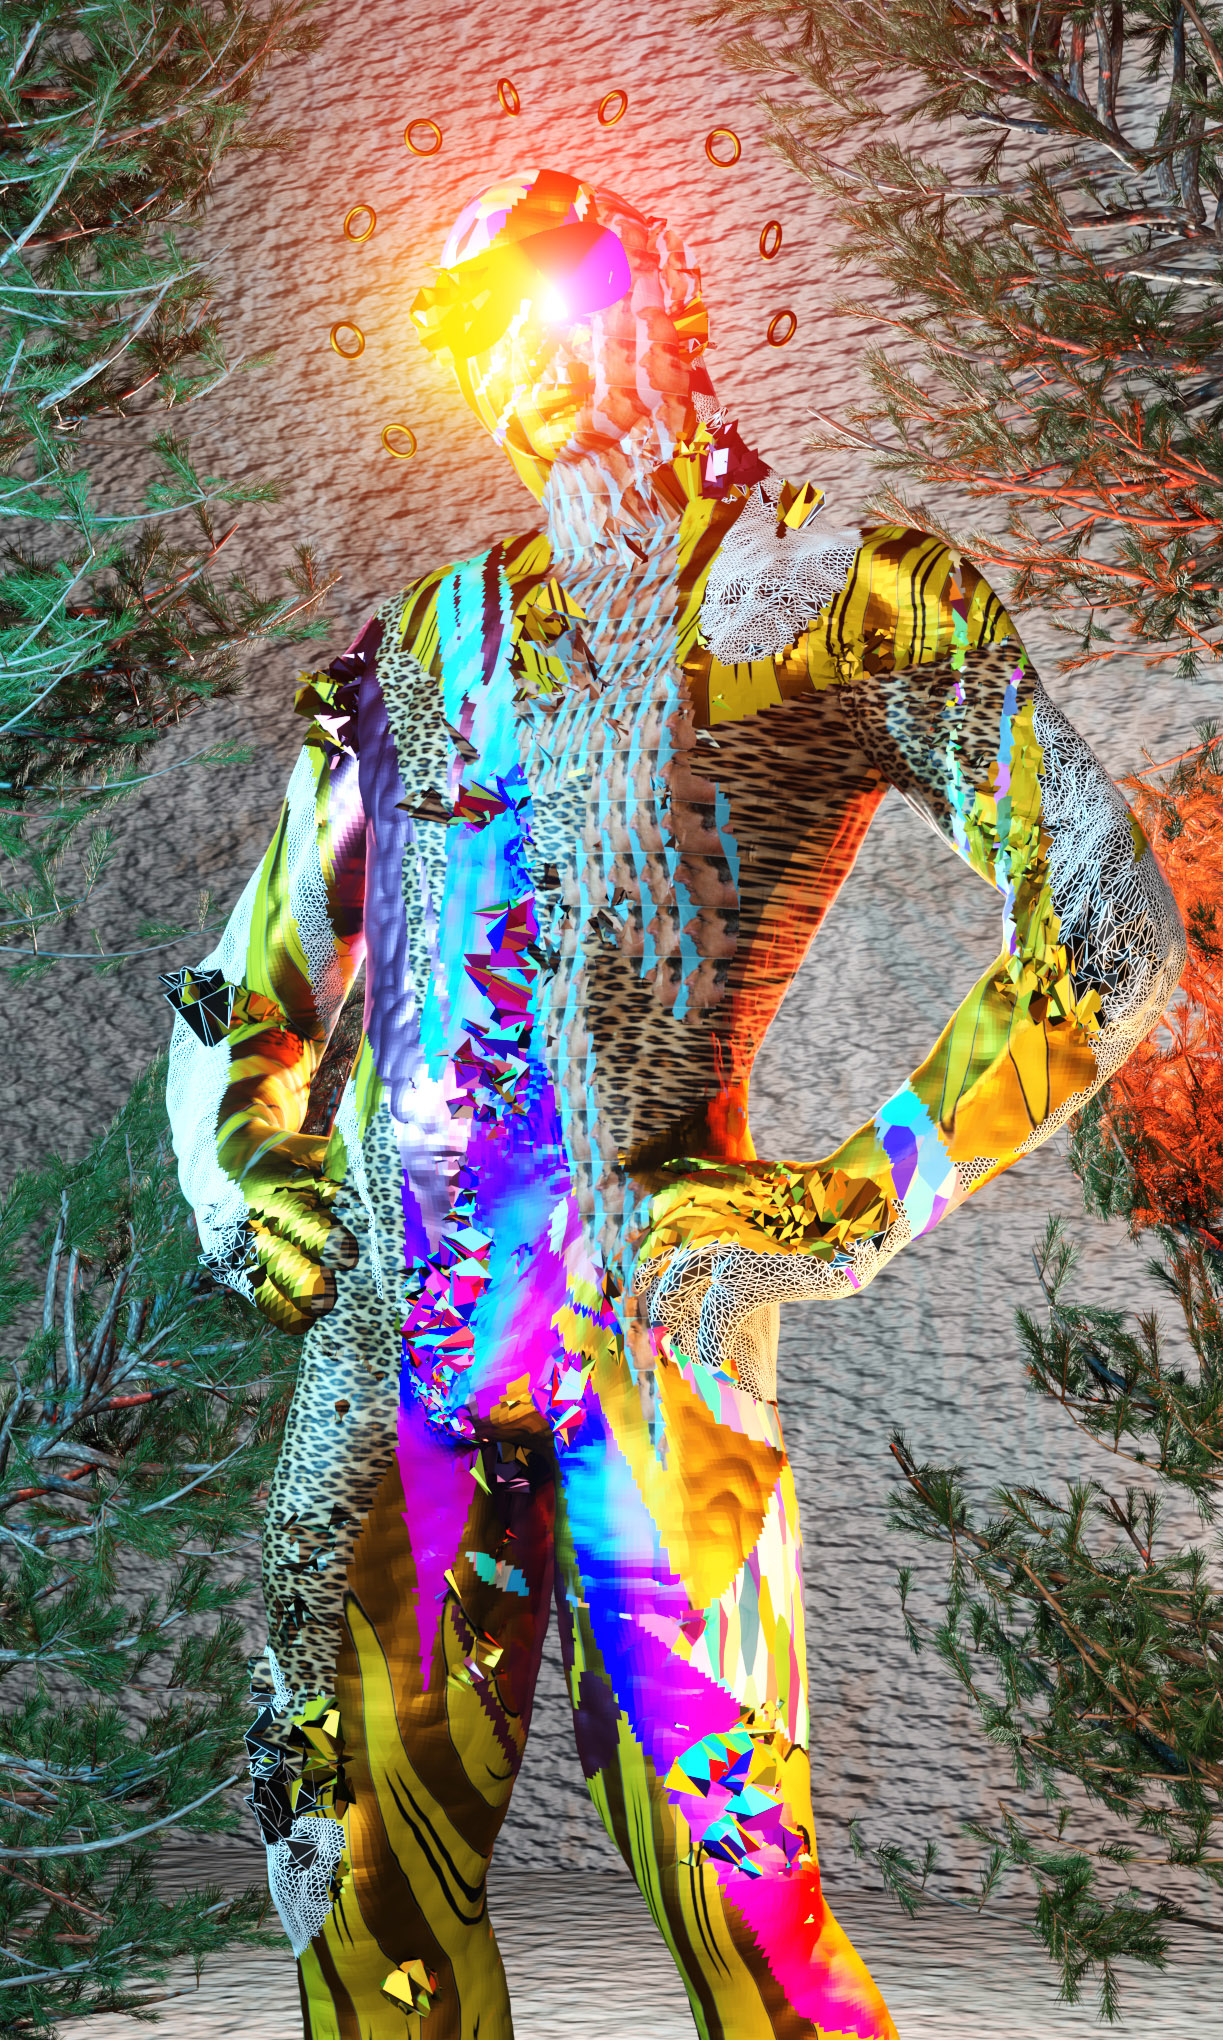 Digital man in a suit made of multiple patterns stands in front of a wall and trees.